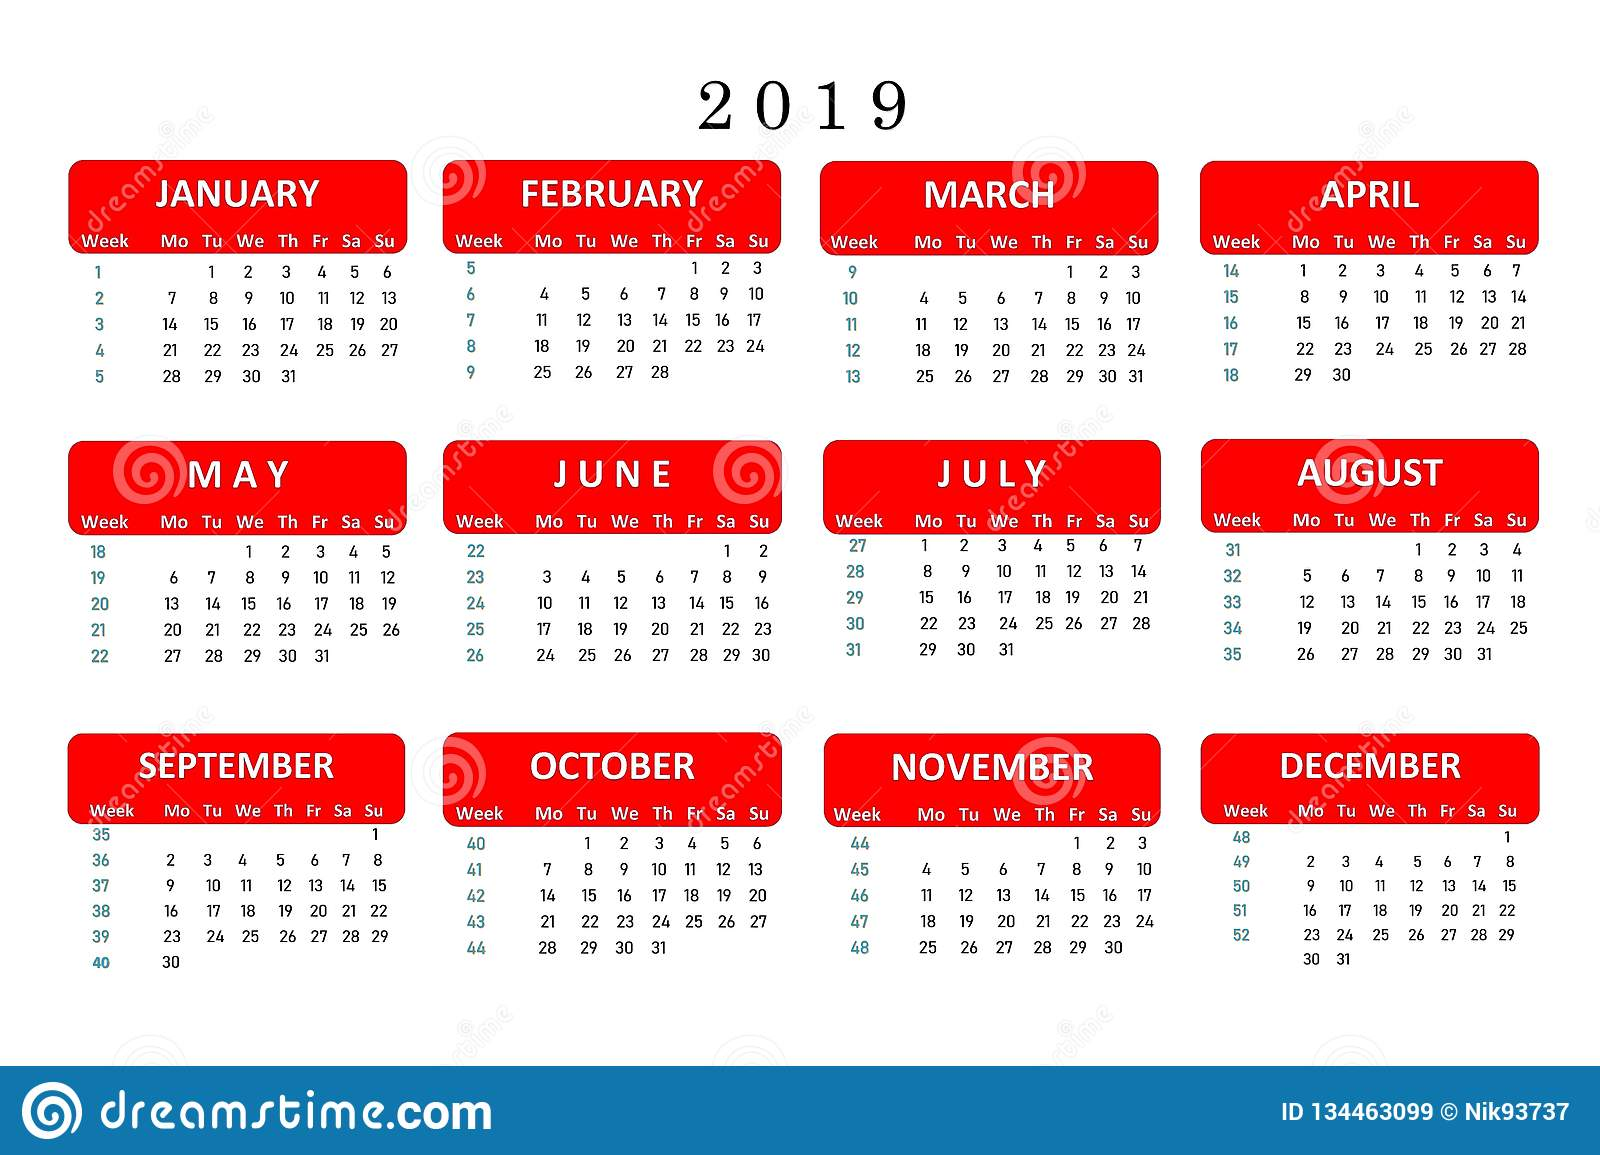 Popular Calendars 2019 Calendar For 2019, A Popular Tool For Important Notes And Work In